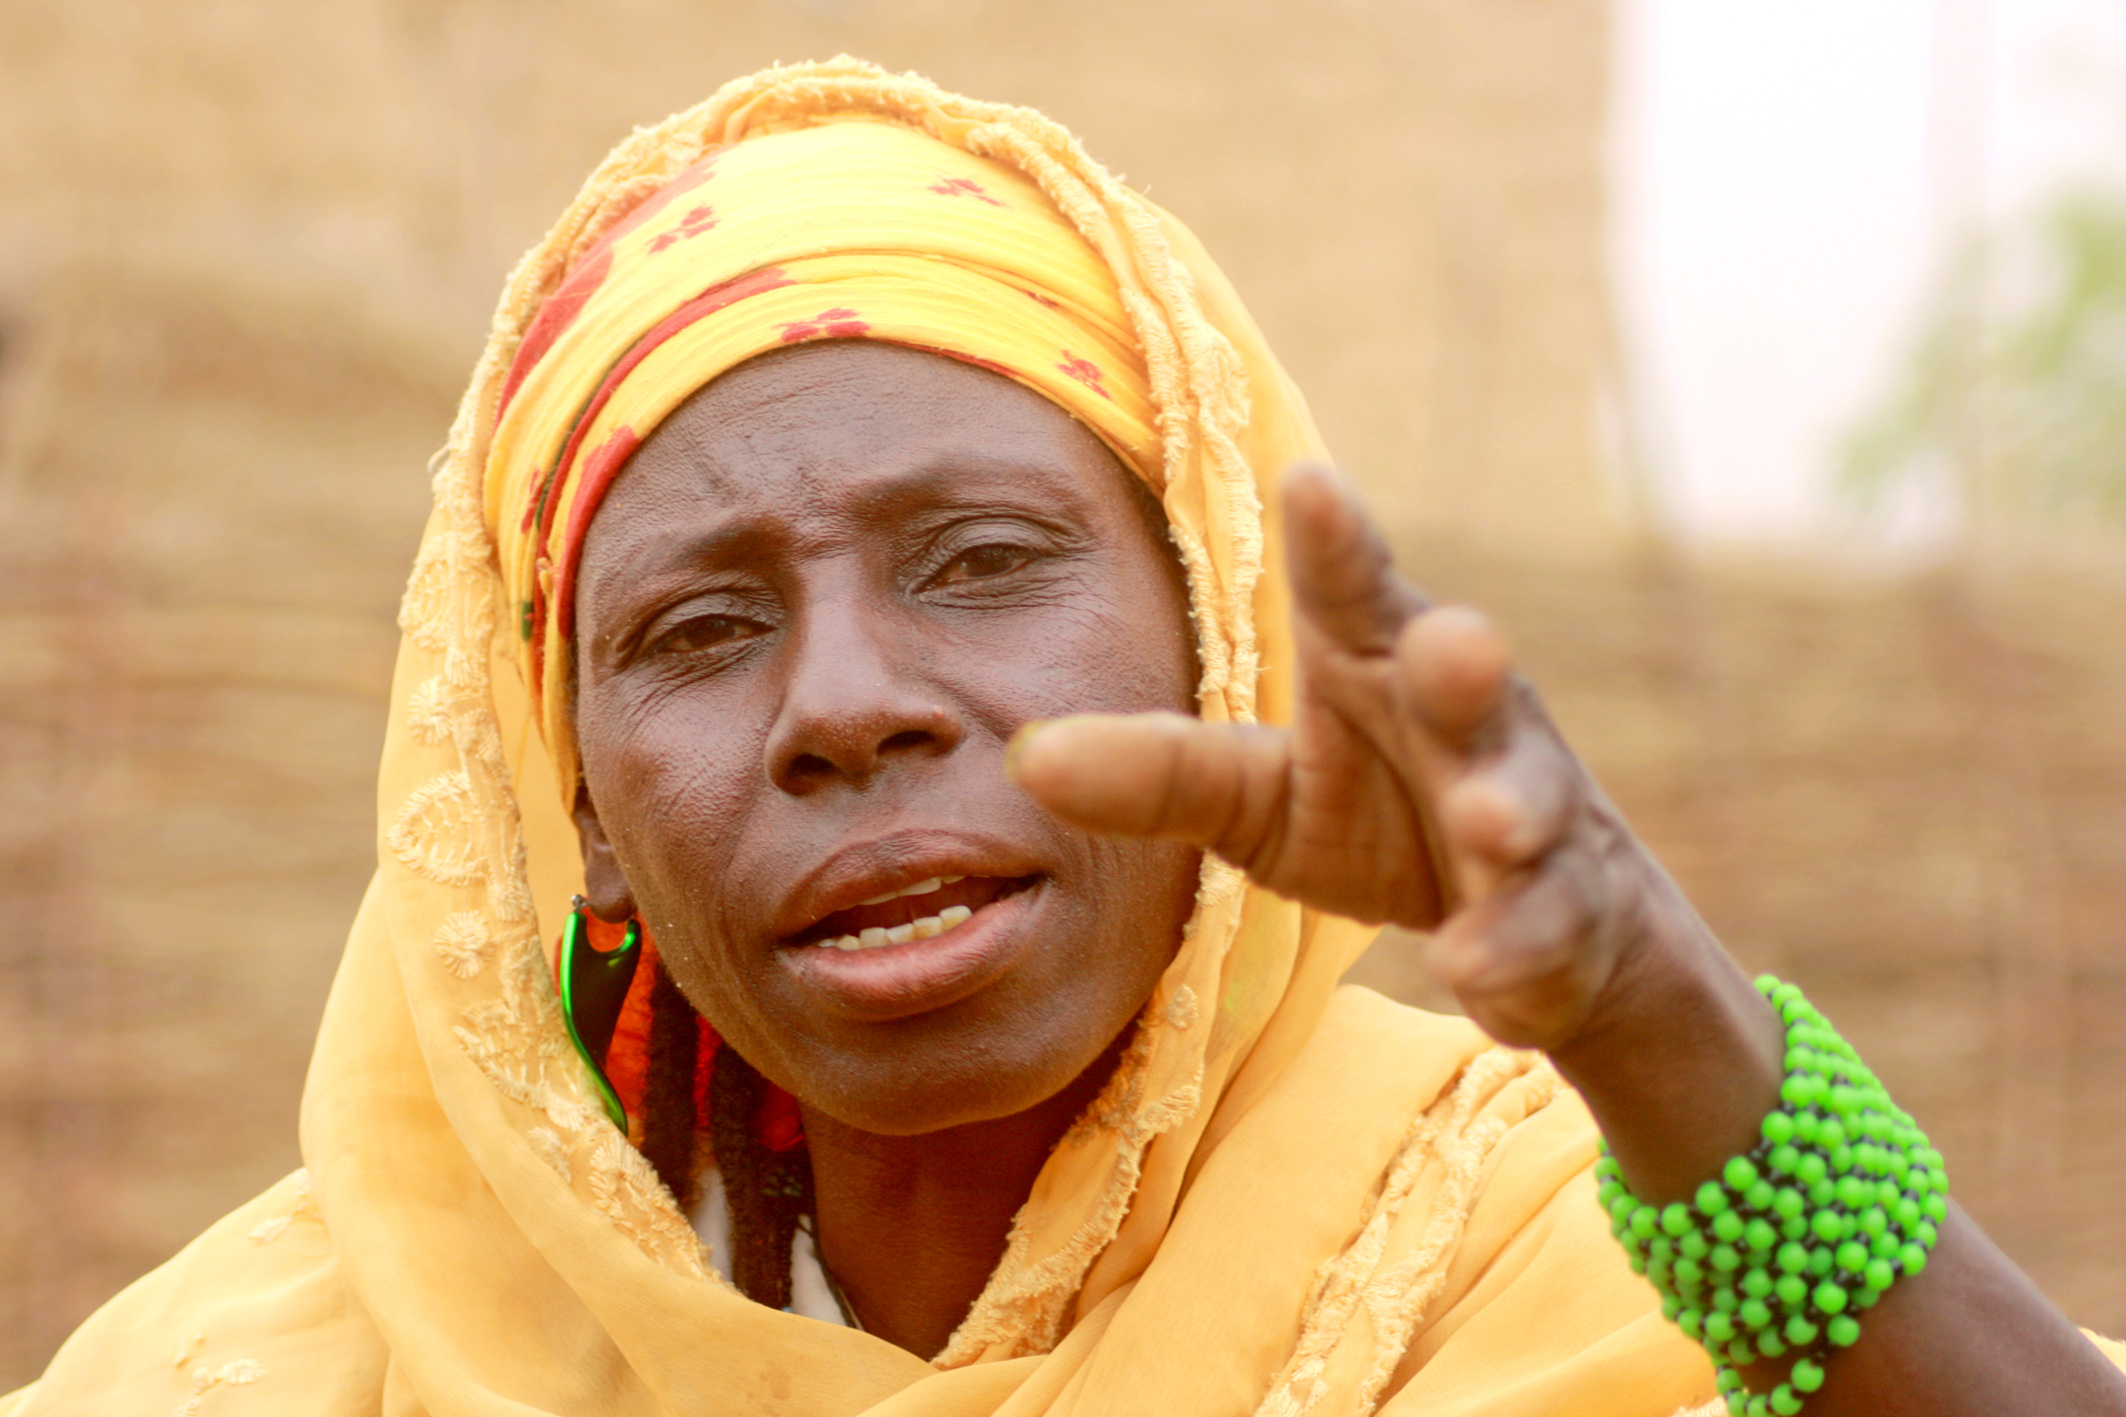 Hani Issa from Talkadabey village in Oullam district in Niger's Tillaberi region has been battling to feed her family after the men left to look for work elsewhere